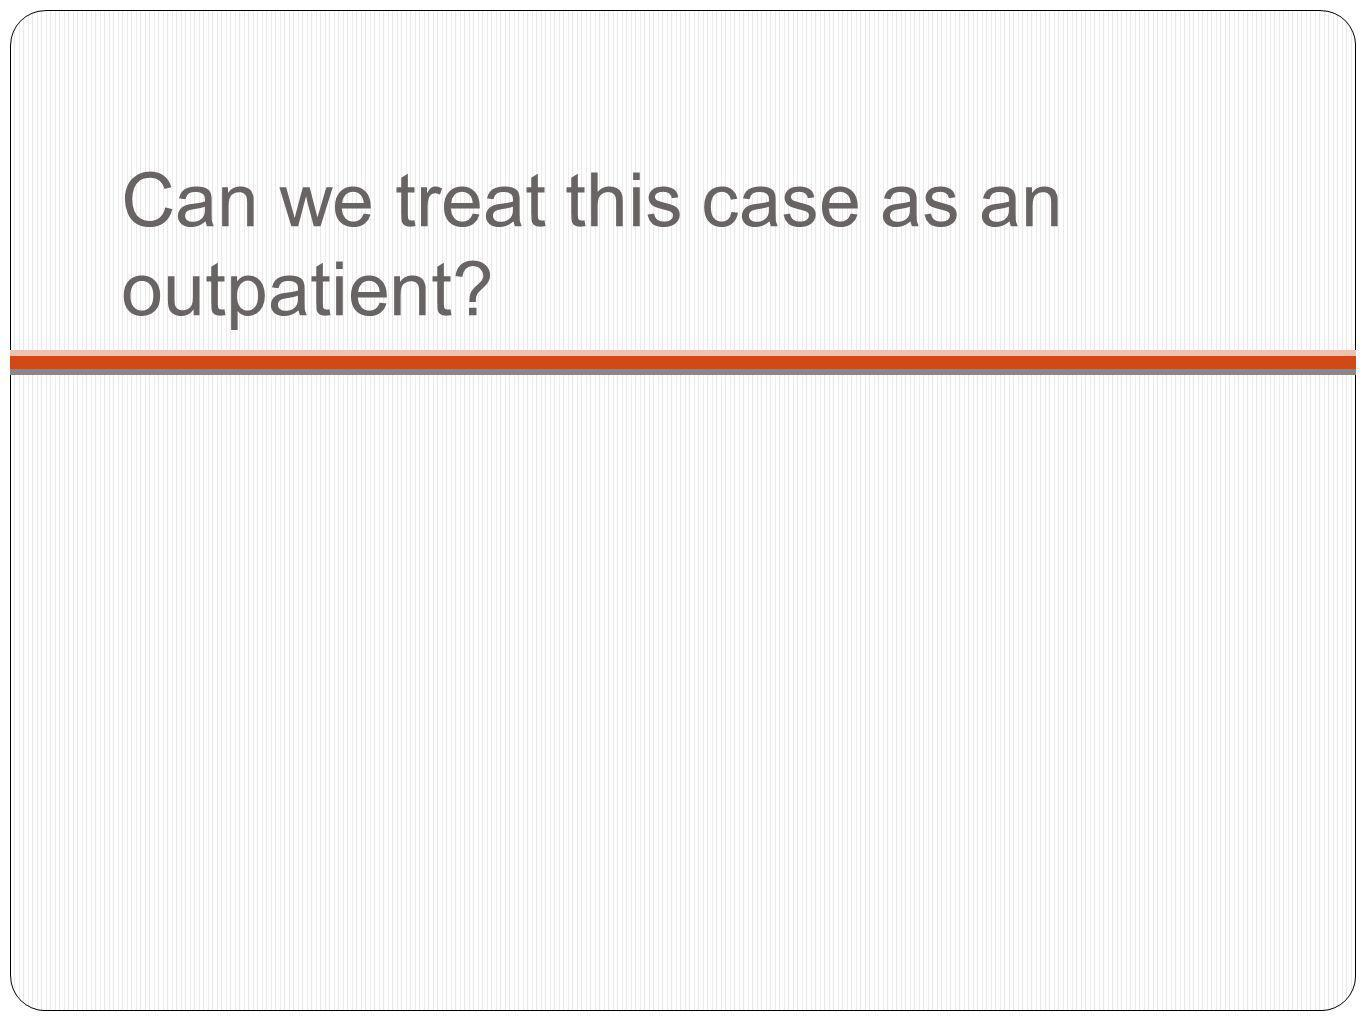 Can we treat this case as an outpatient